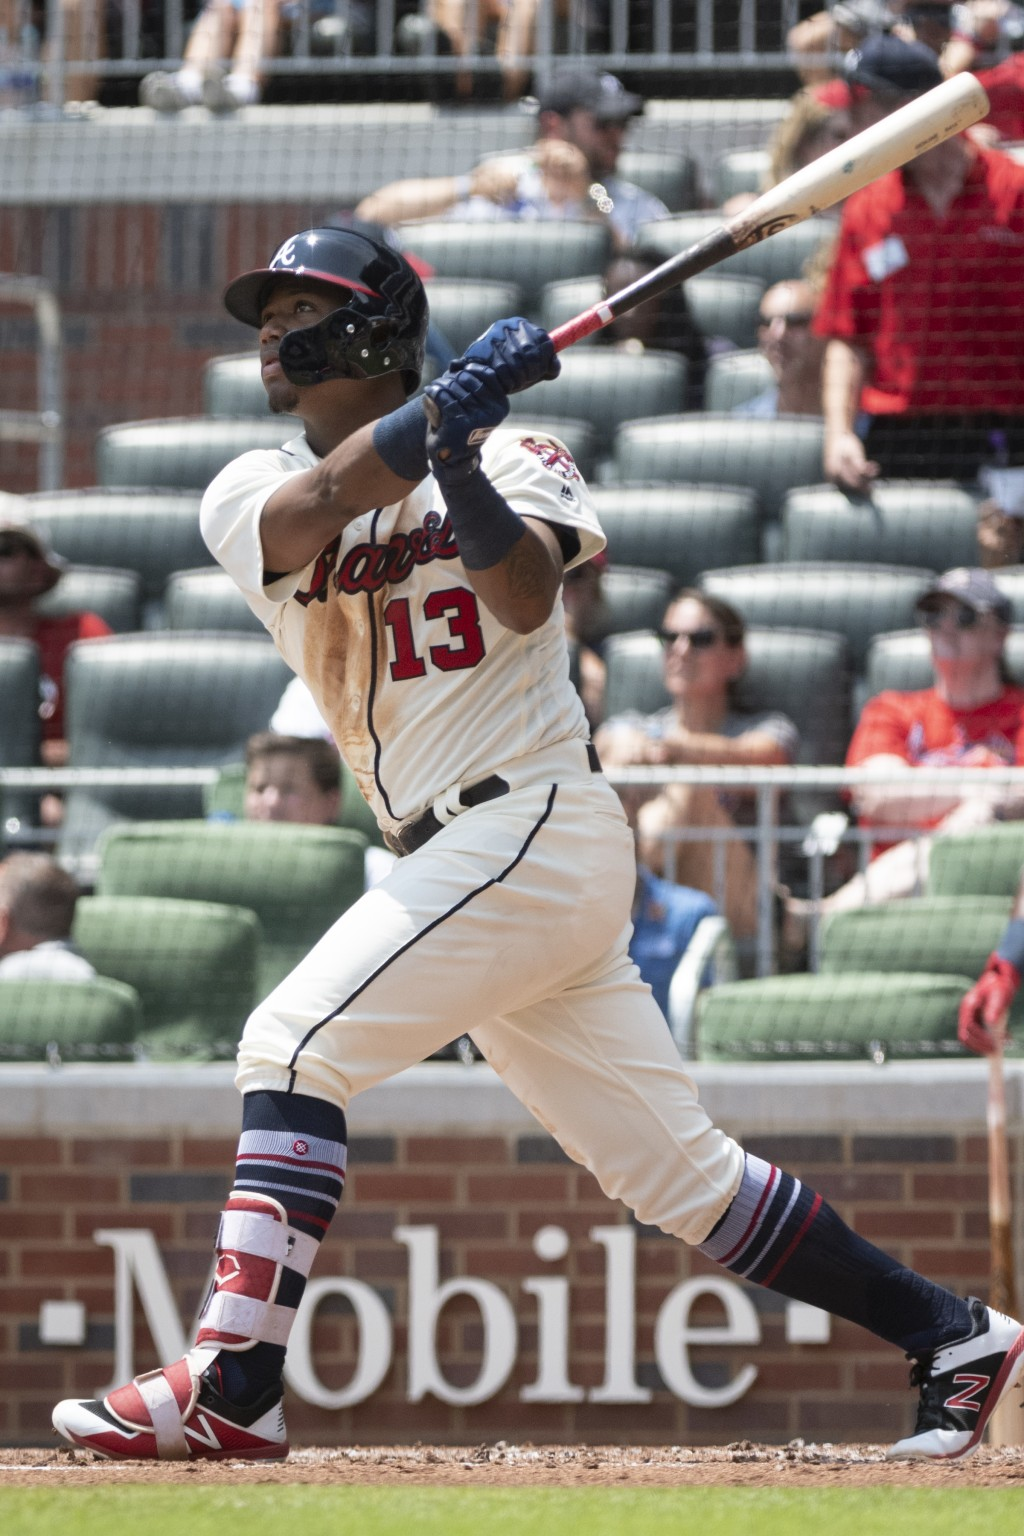 Atlanta Braves' Ronald Acuna Jr. watches his home run ball sail toward left field during the second inning of a baseball game against the Milwaukee Br